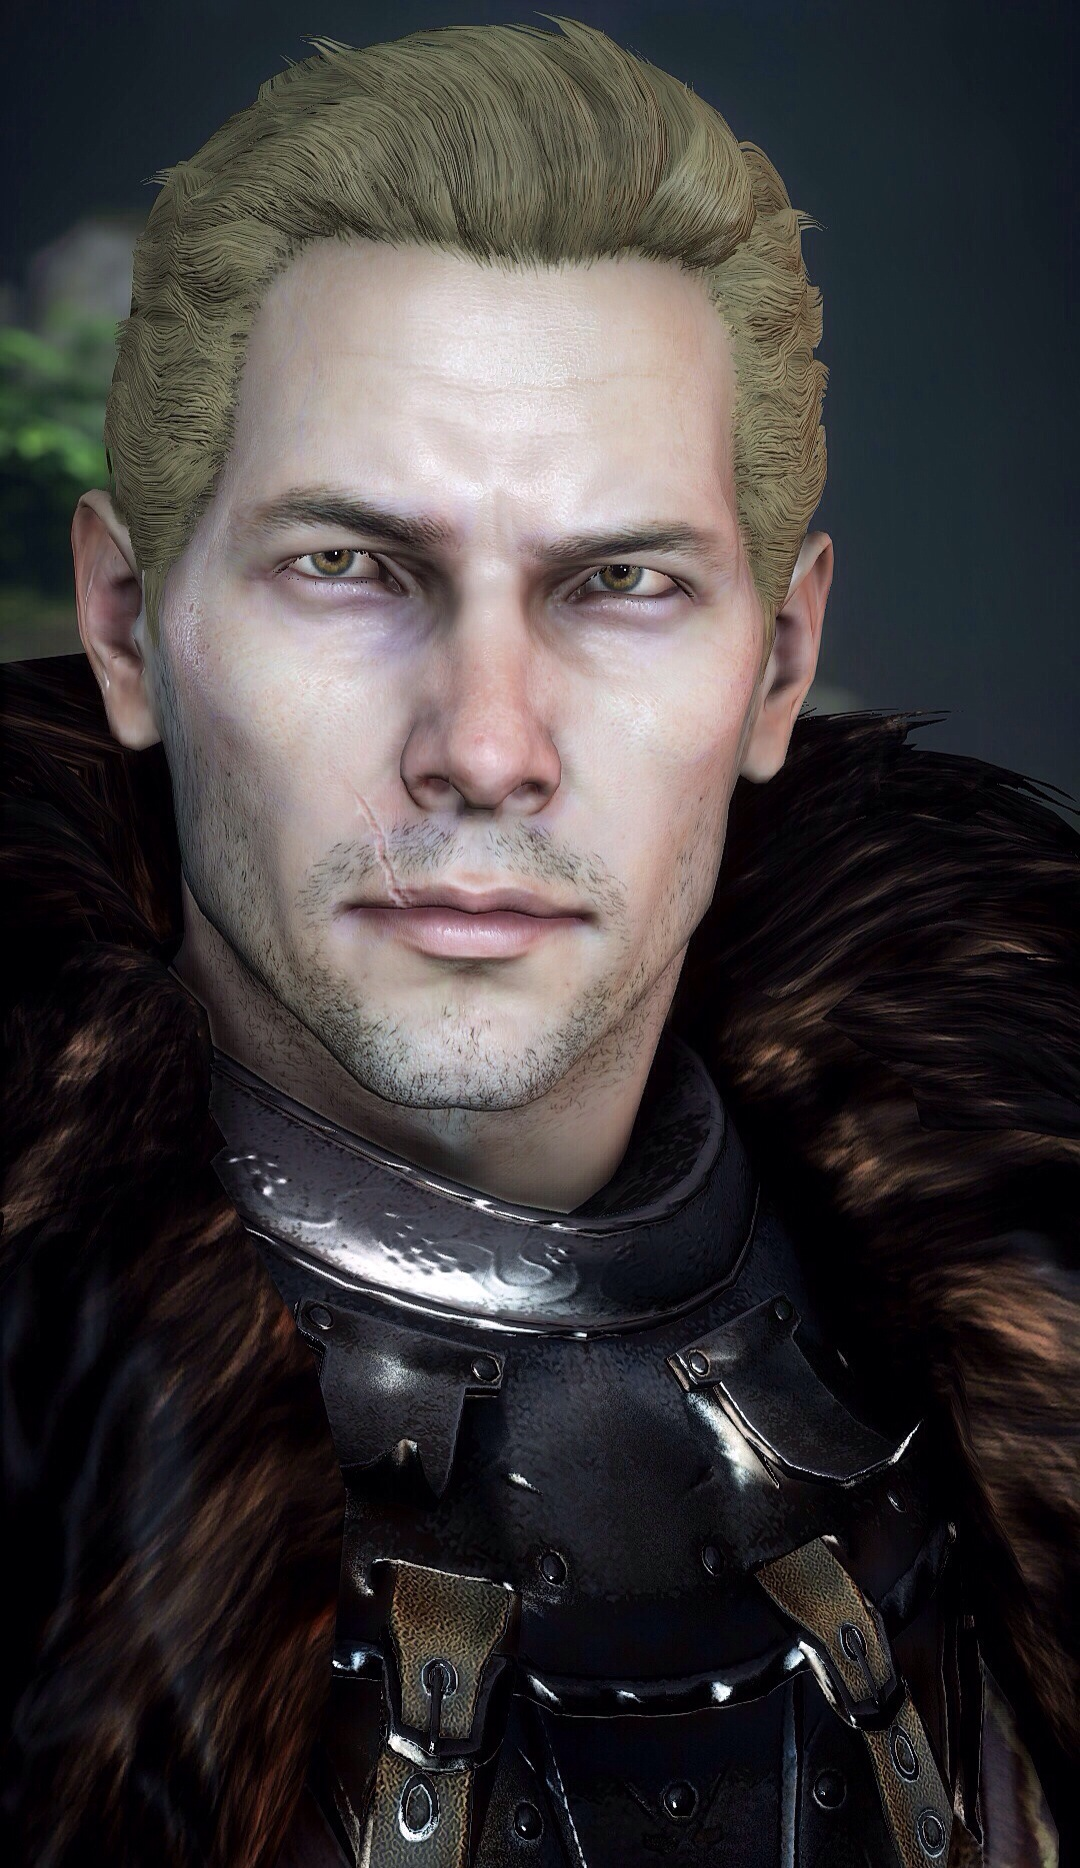 Dragon Age Inquisition Cullen Rutherford Photo 38655249 Fanpop